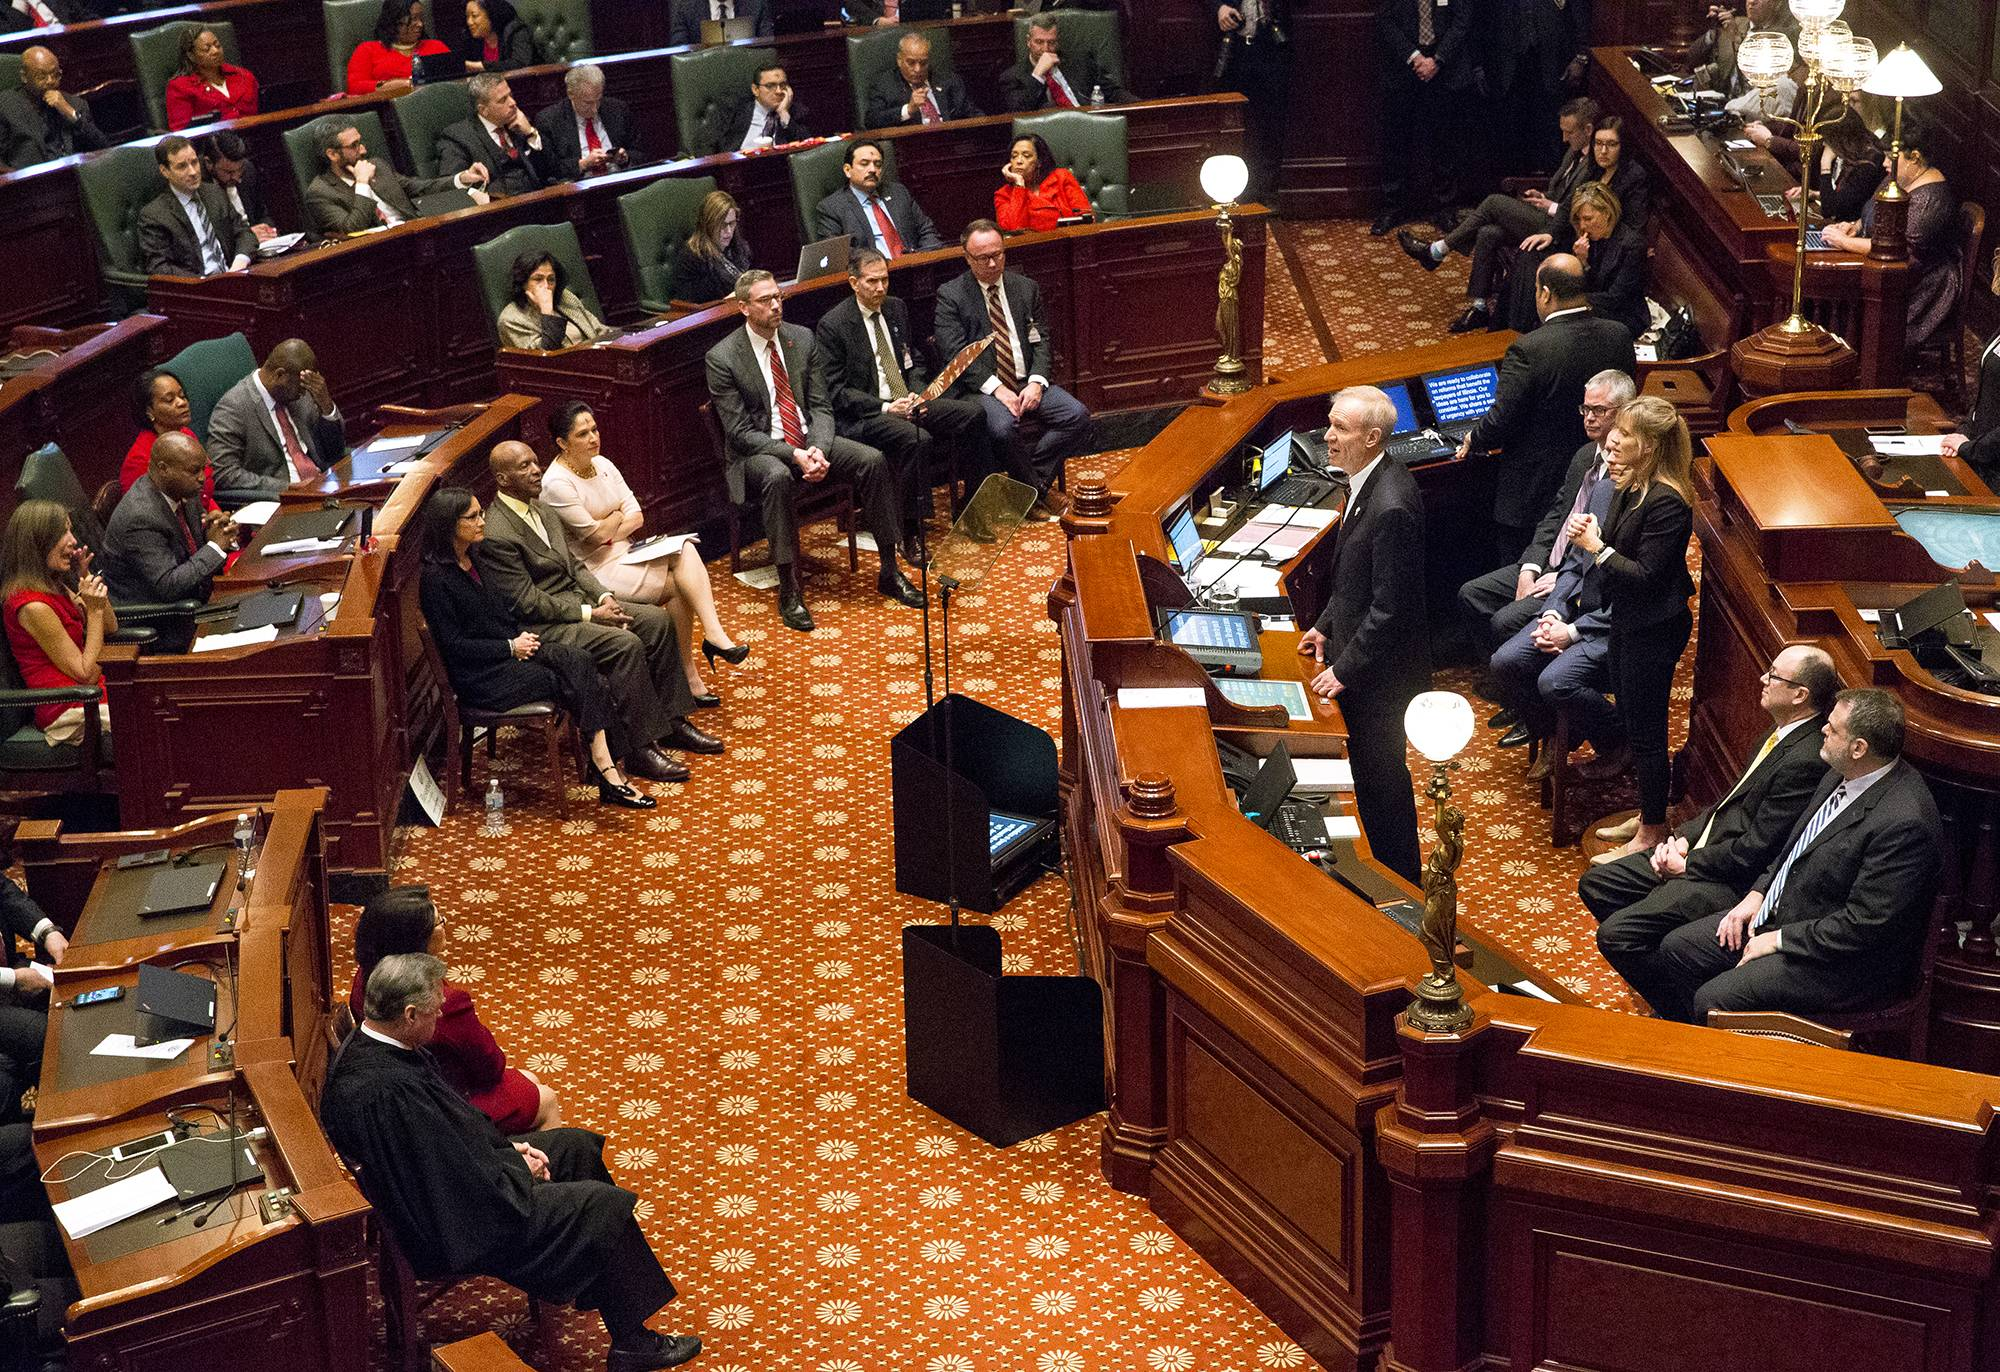 Illinois Gov. Bruce Rauner delivers his budget address to a joint session of the General Assembly Wednesday in the House Chamber.